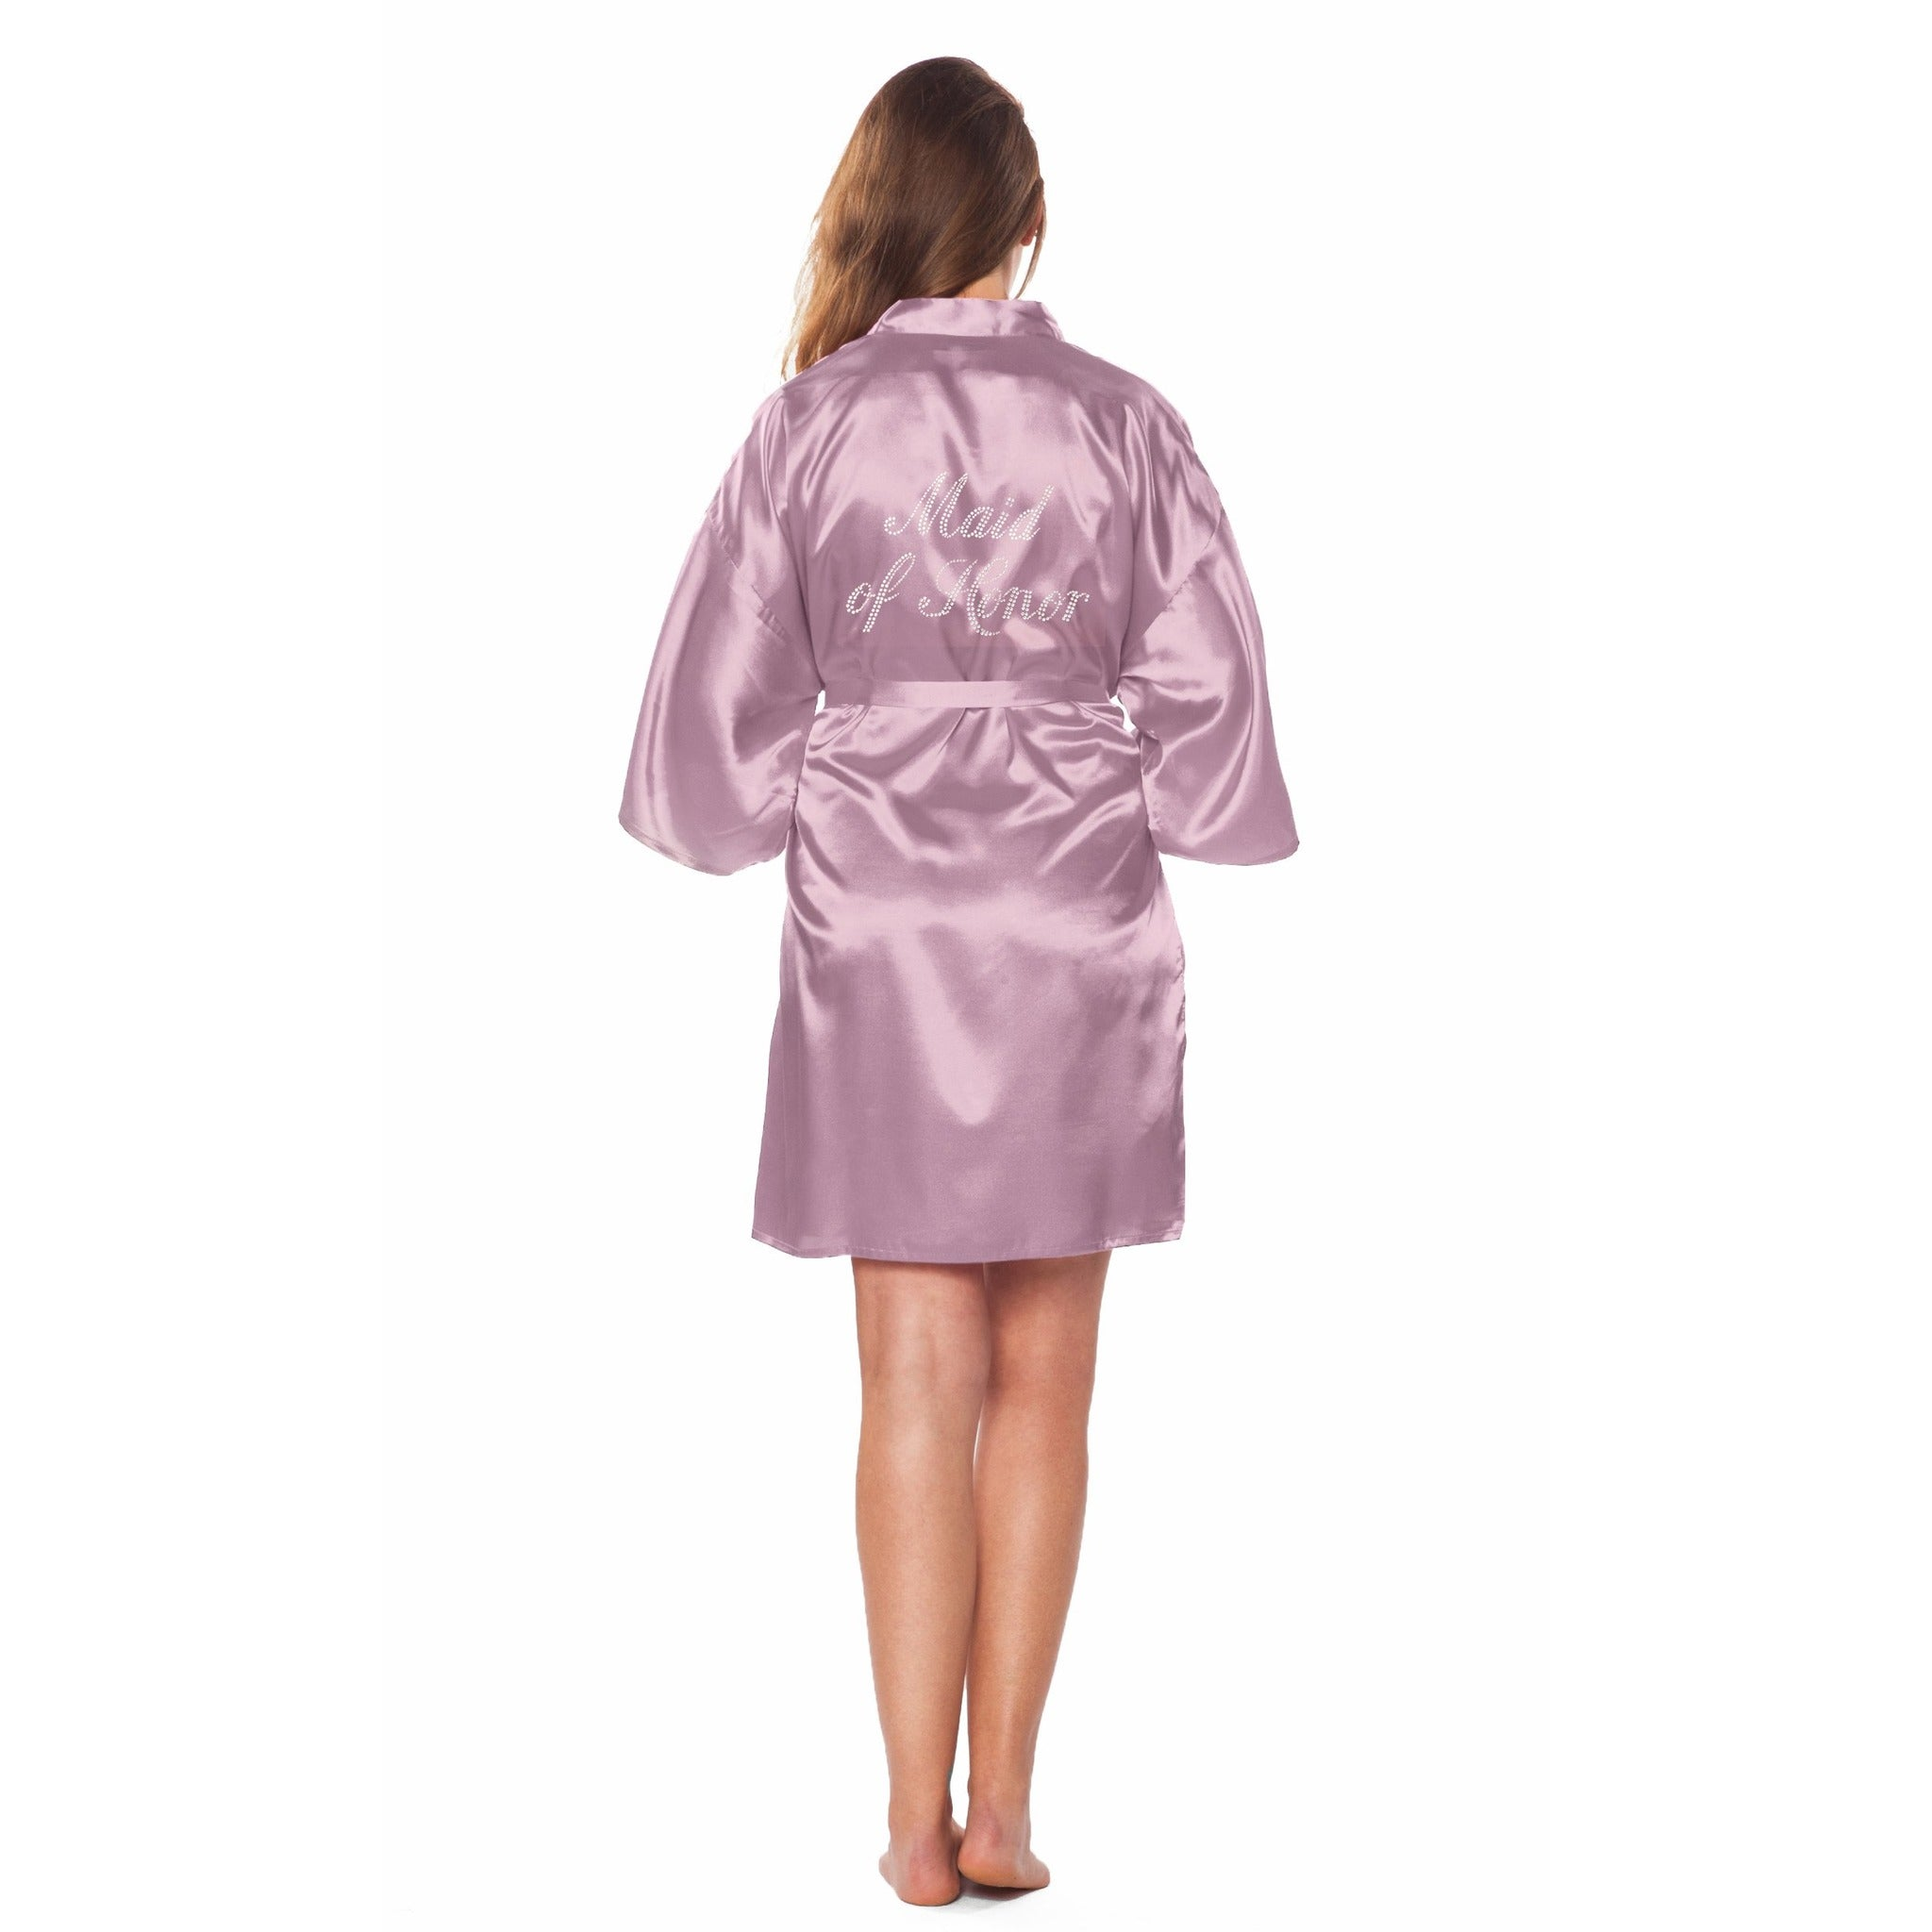 MAID OF HONOR SATIN ROBE with Rhinestones